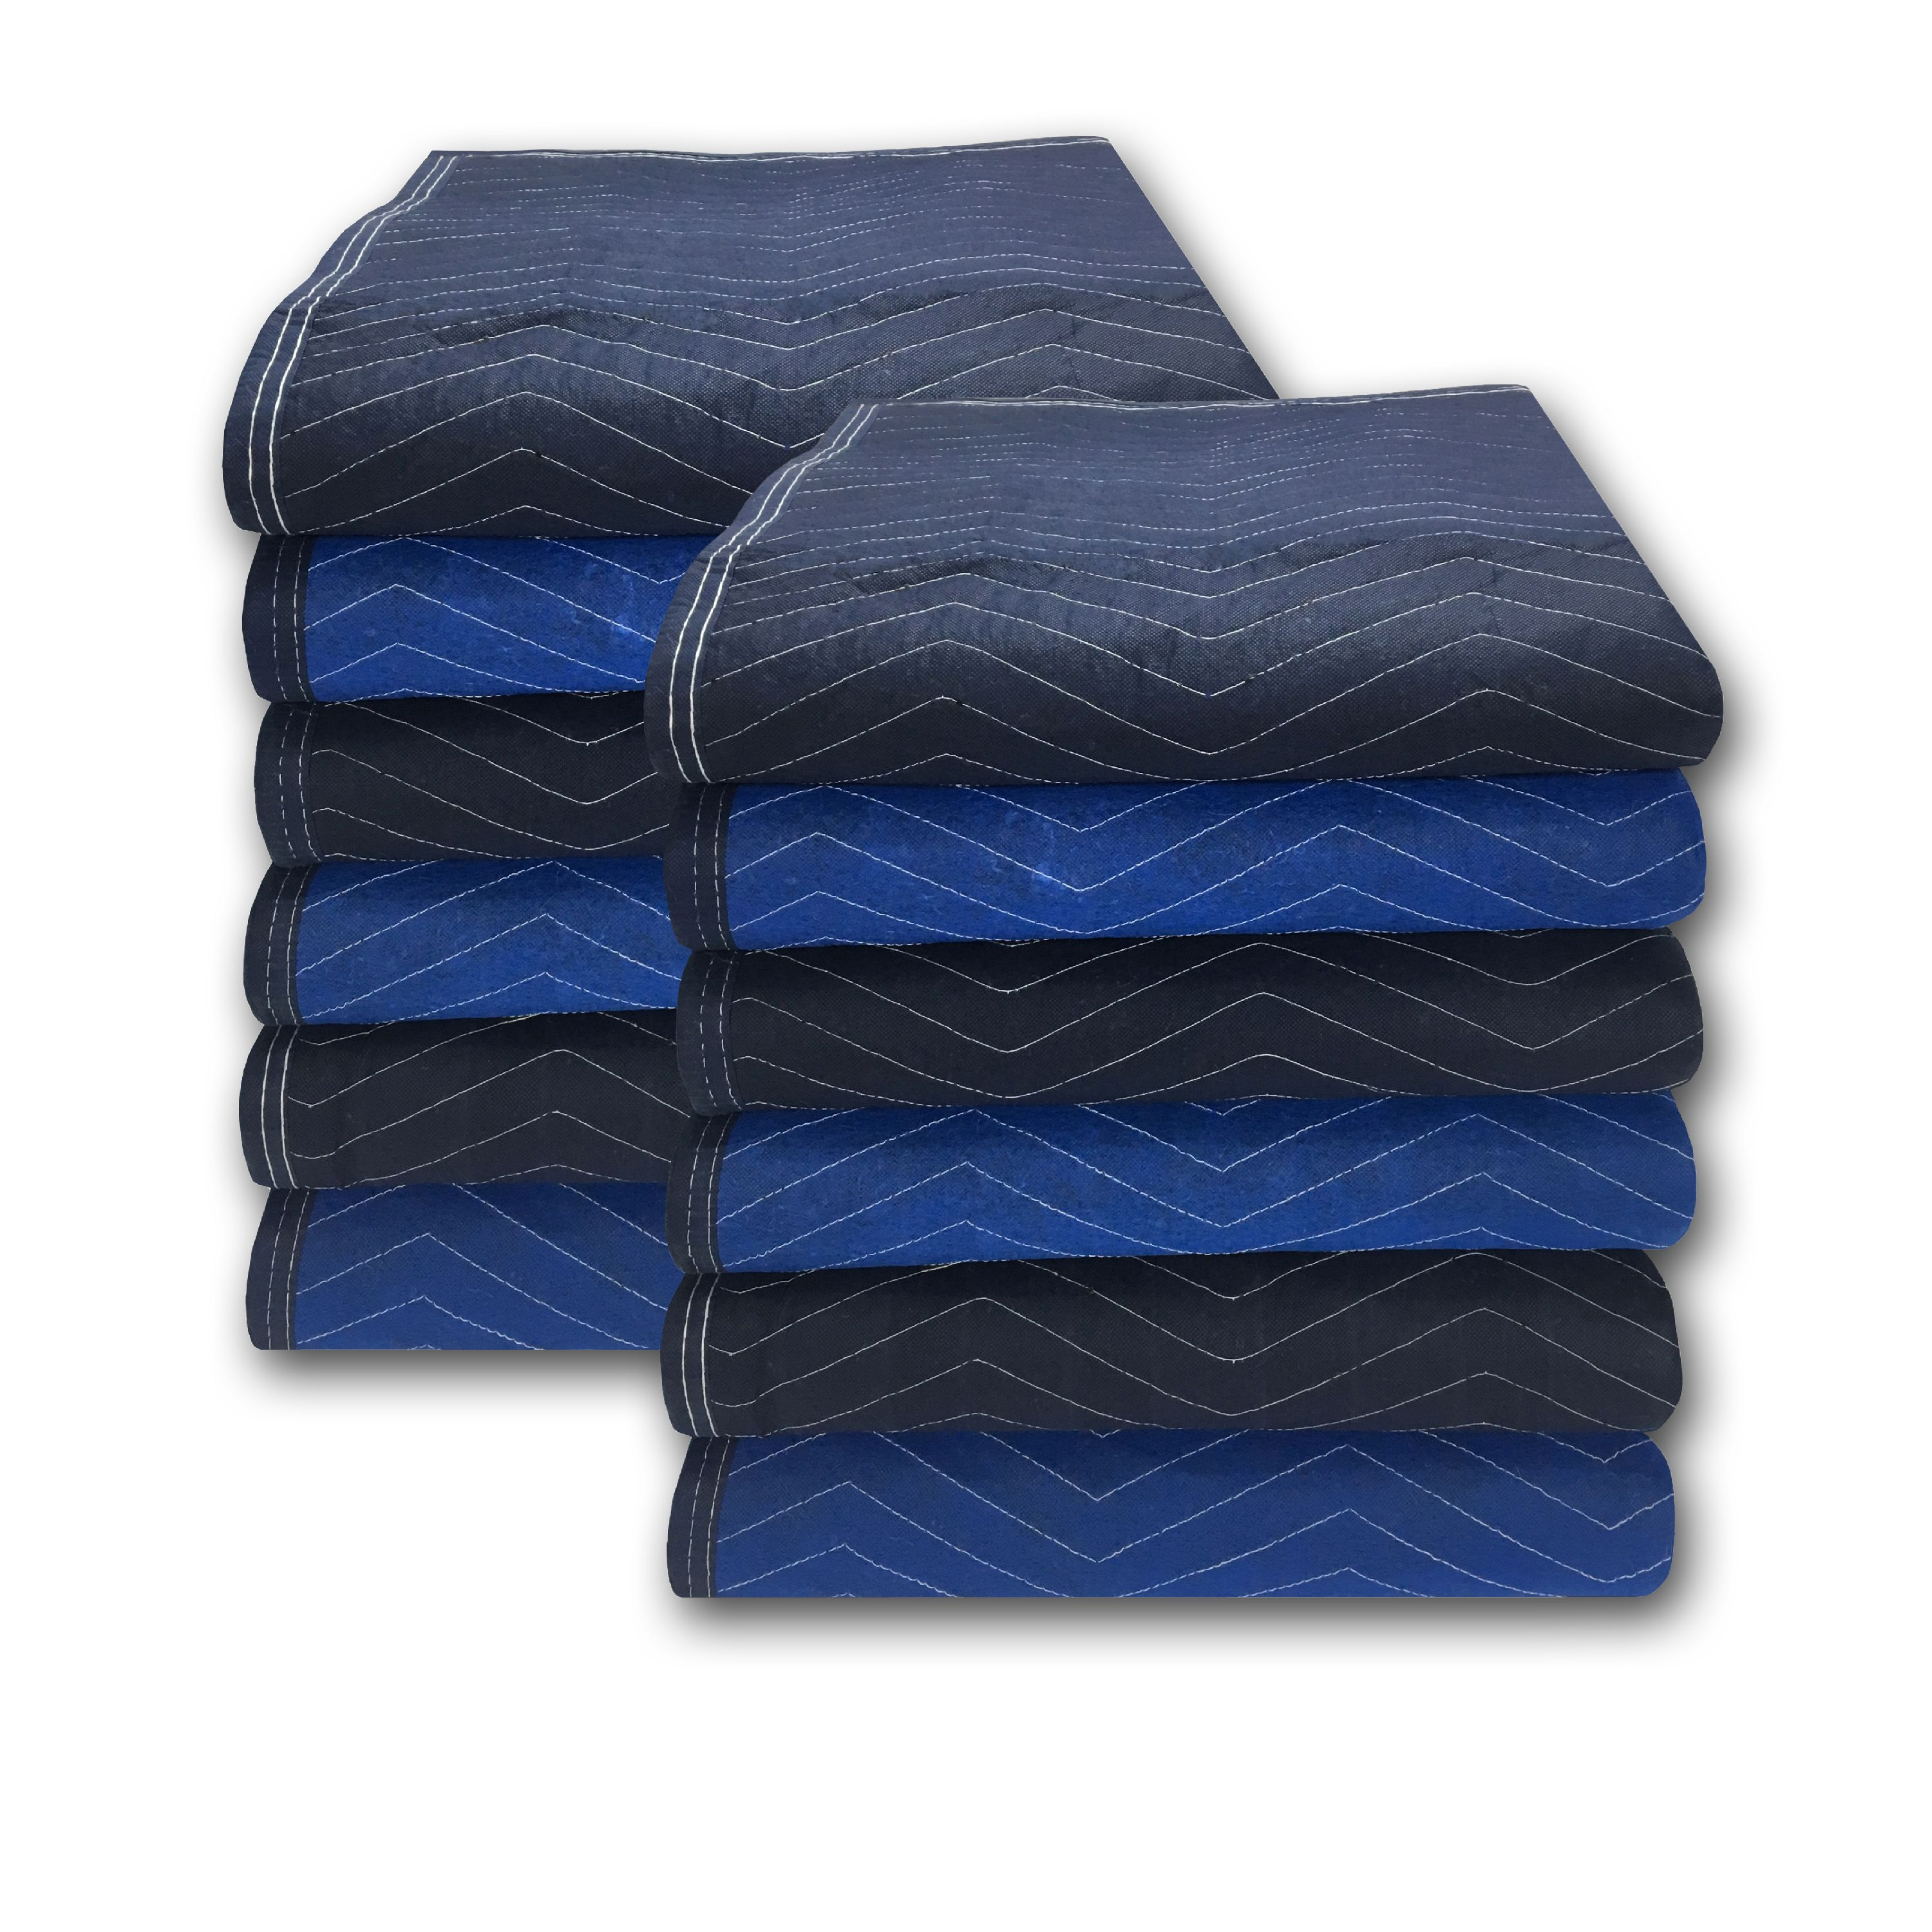 Uboxes Pro Mover Moving Blankets, 72 x 80 in, 6.83lbs each, 12 Pack